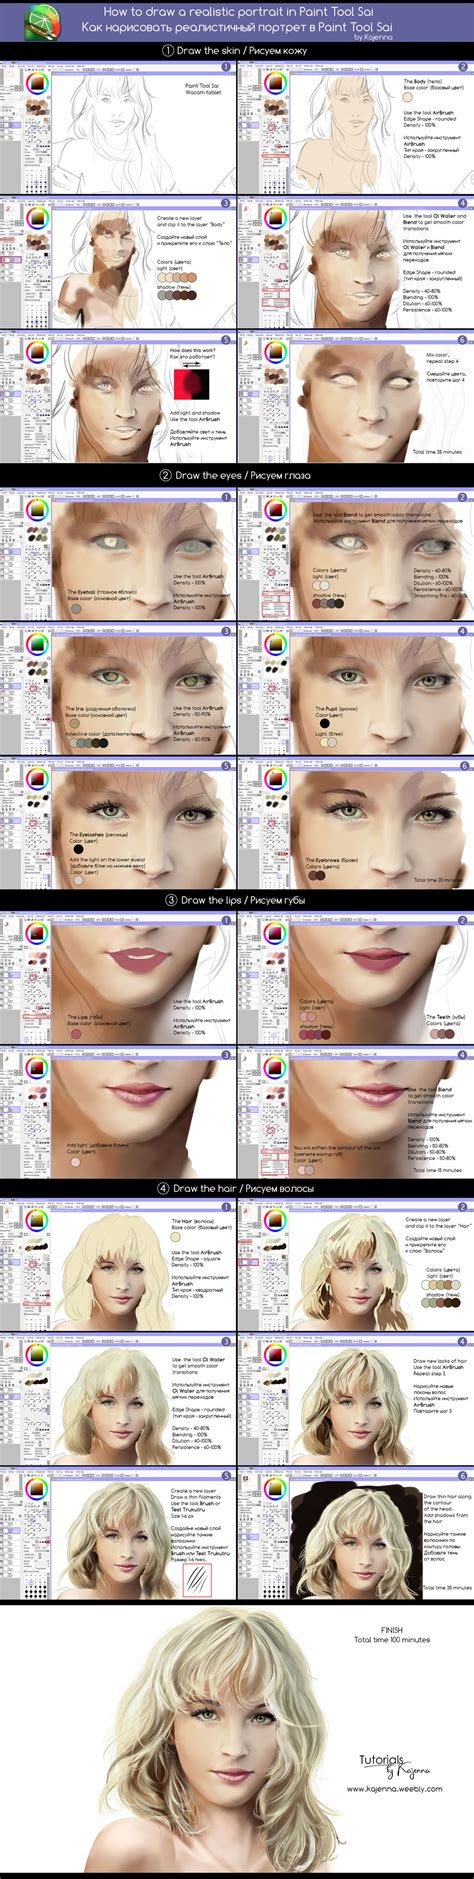 how to draw a realistic portrait in sai tutorial by